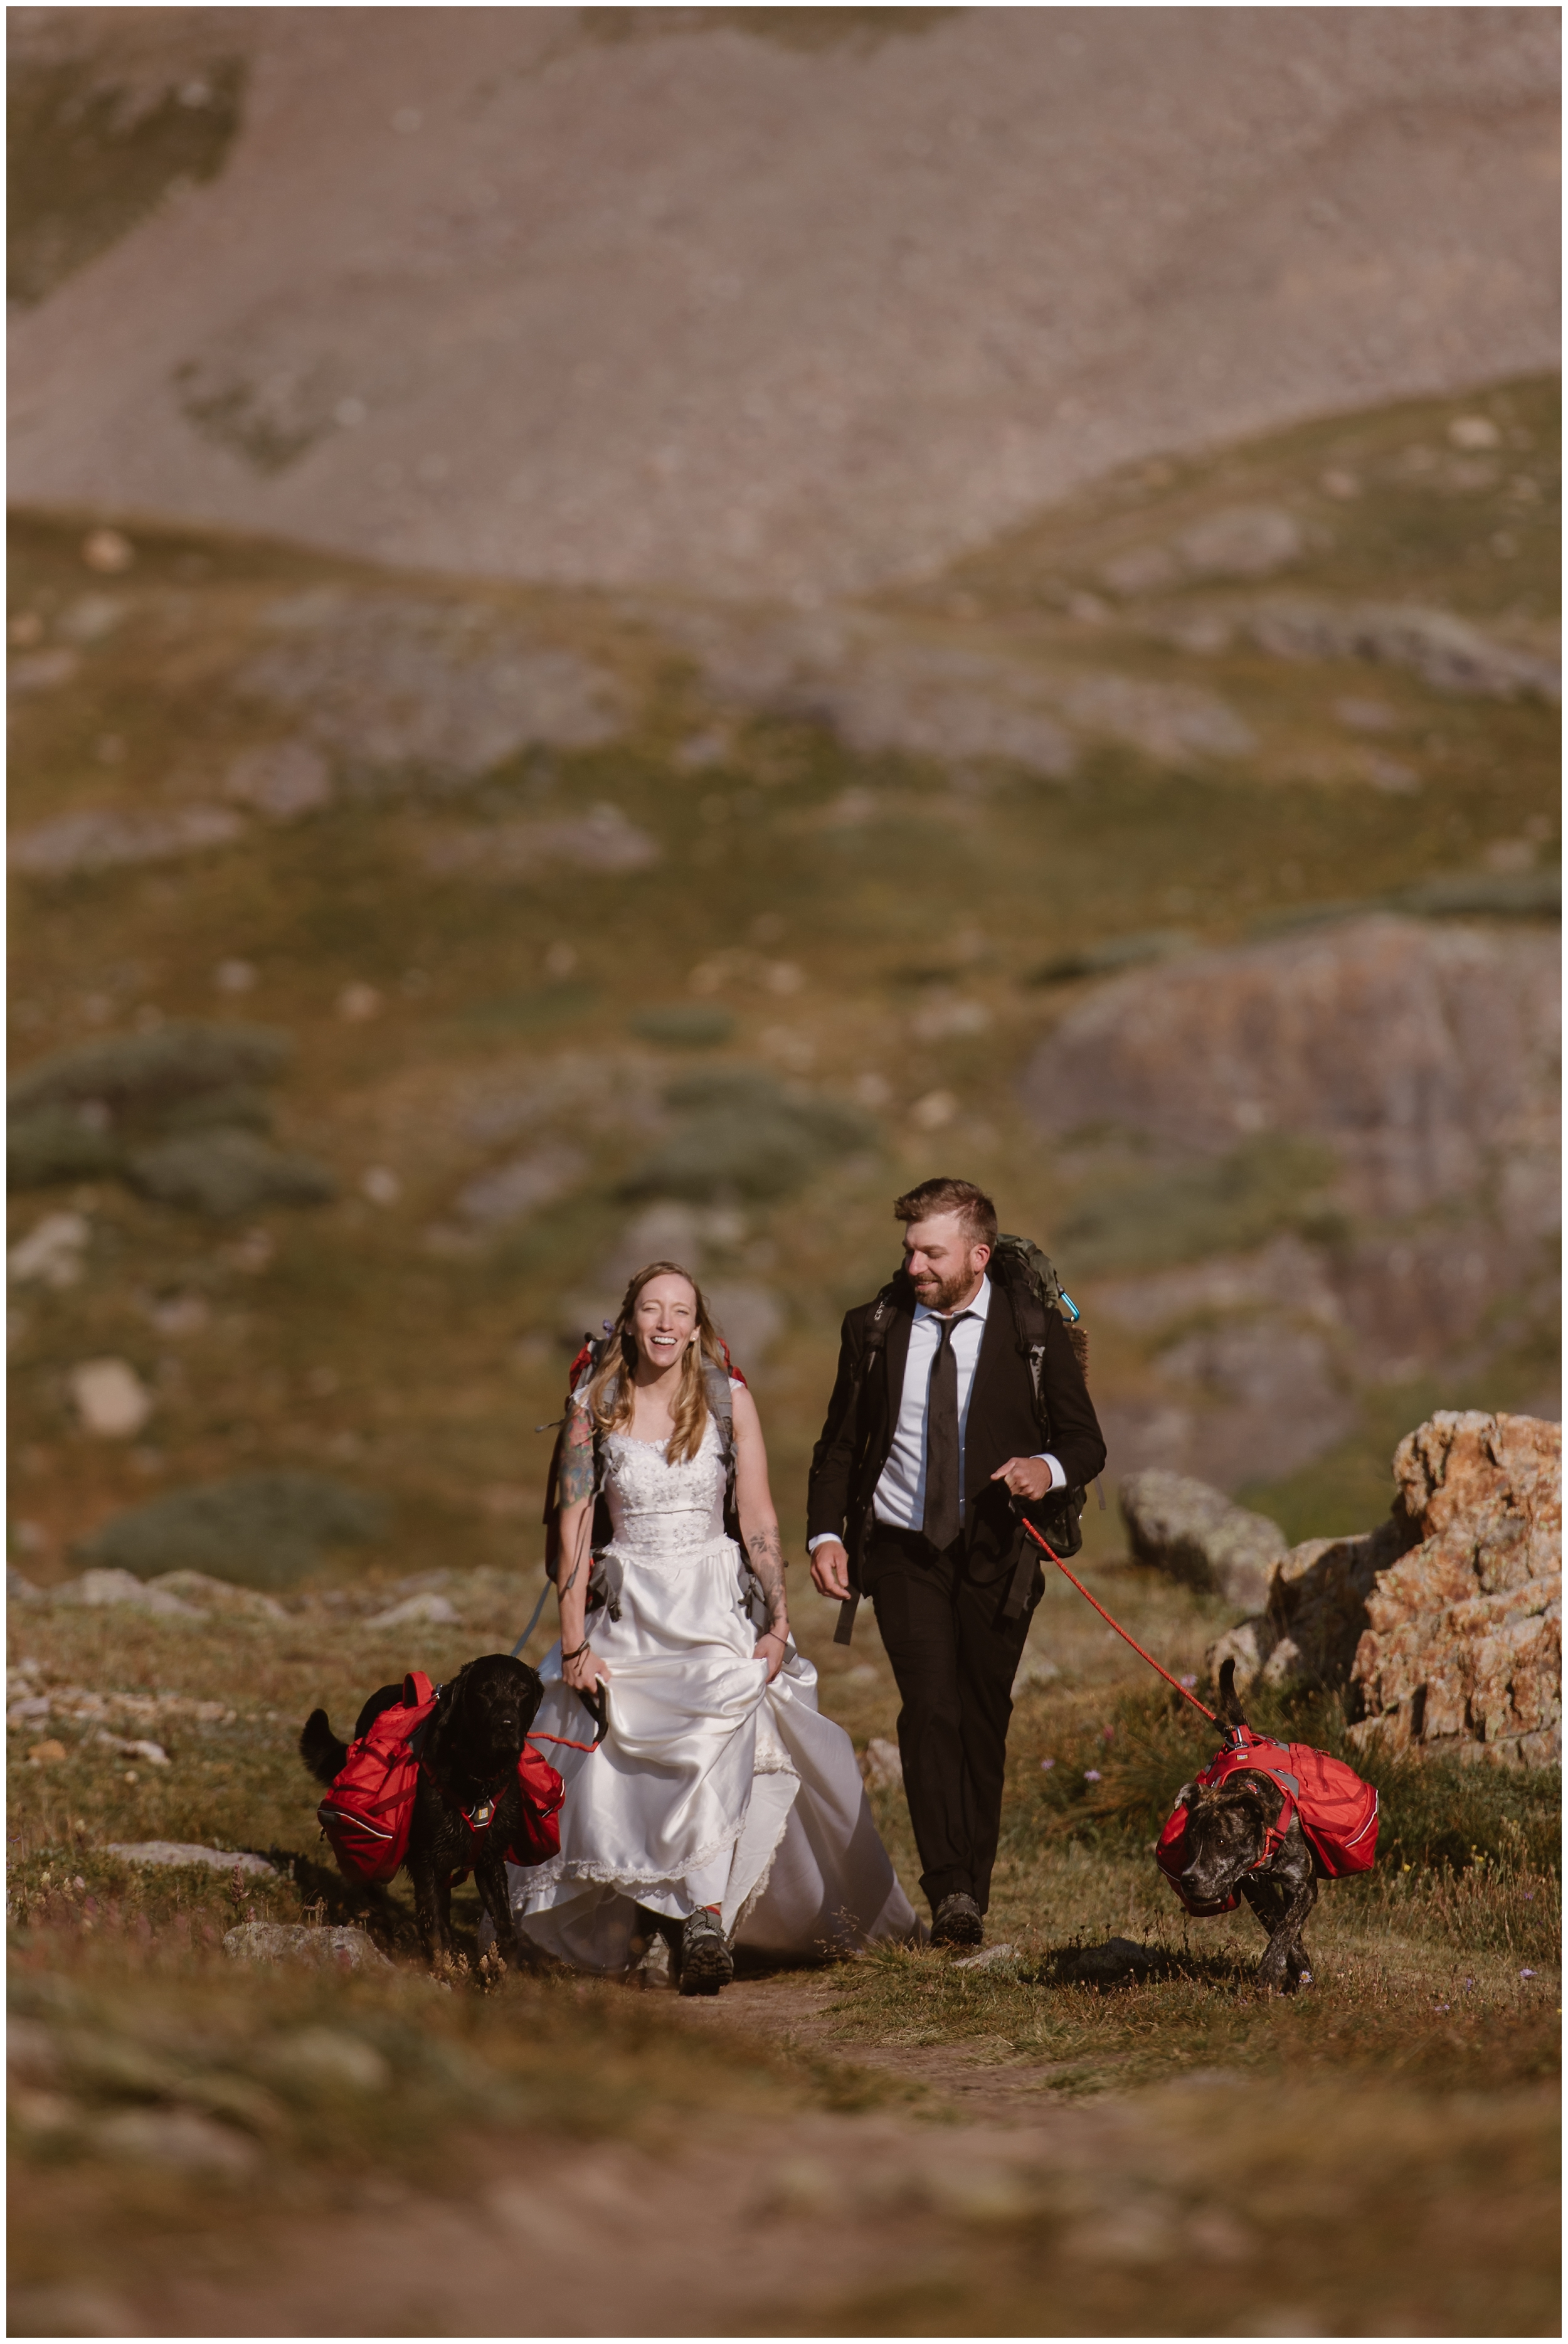 Brecka and Nick wanted to elope with their dogs, Cooper and Trek, so they brough them along on their destination elopement. Brecka and Nick' hike with their pups during their Colorado moutnain wedding. These adventure elopement photos were captured by Adventure Instead, an elopement wedding photographer.